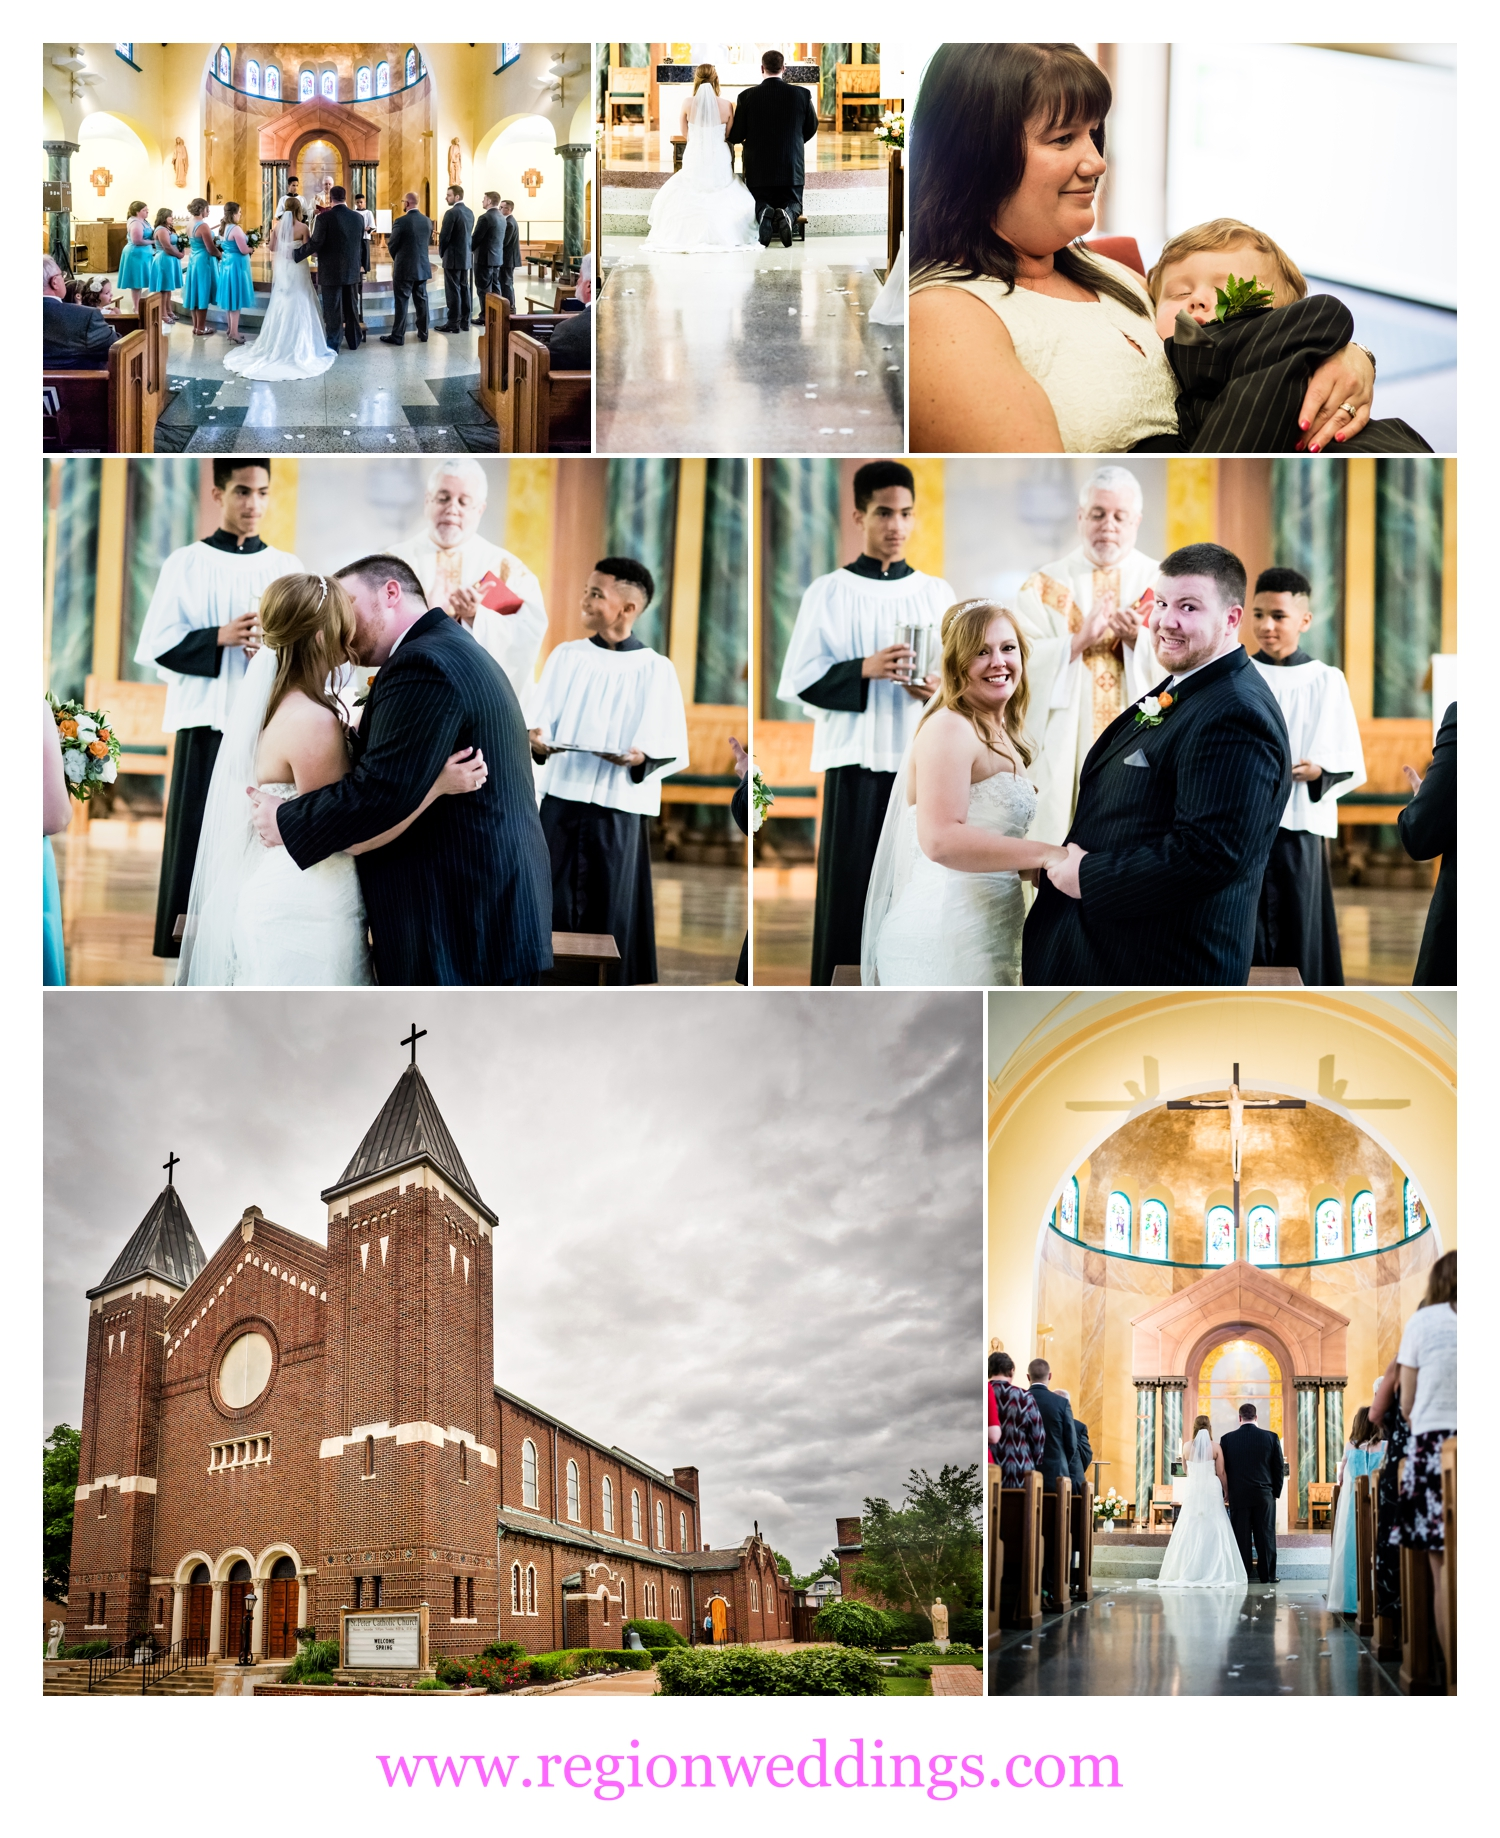 Wedding ceremony photo collage of St. Peter's Parish.